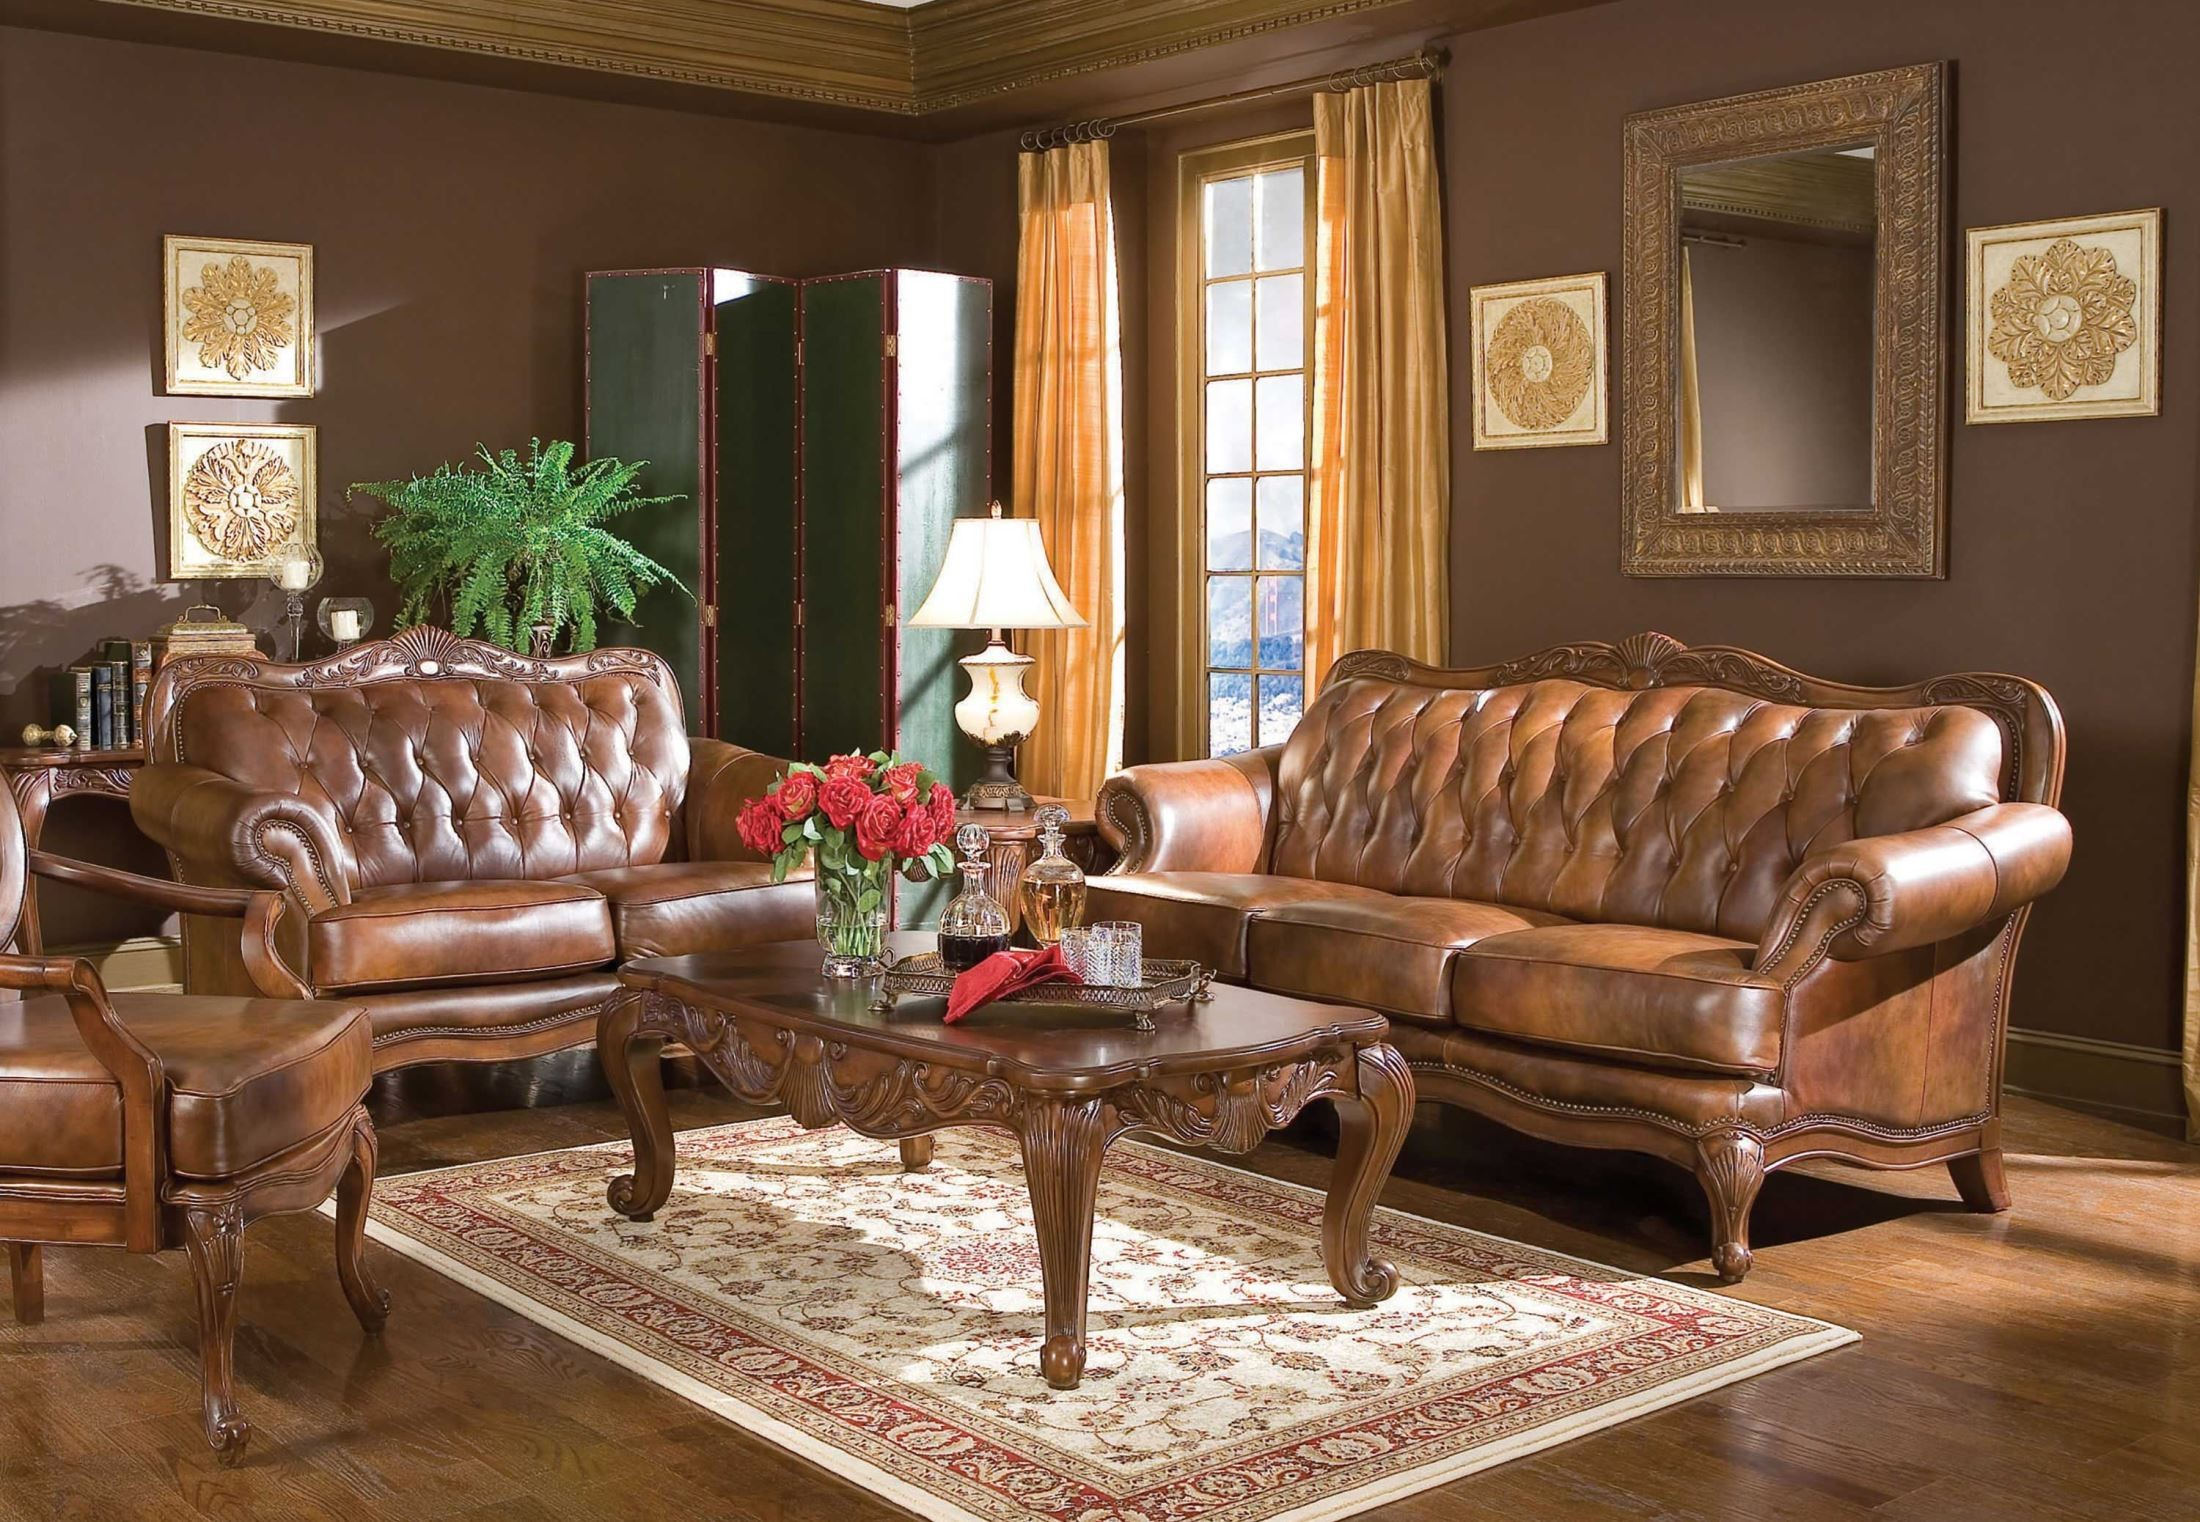 Stanton 3 piece living room set brown - 2457680